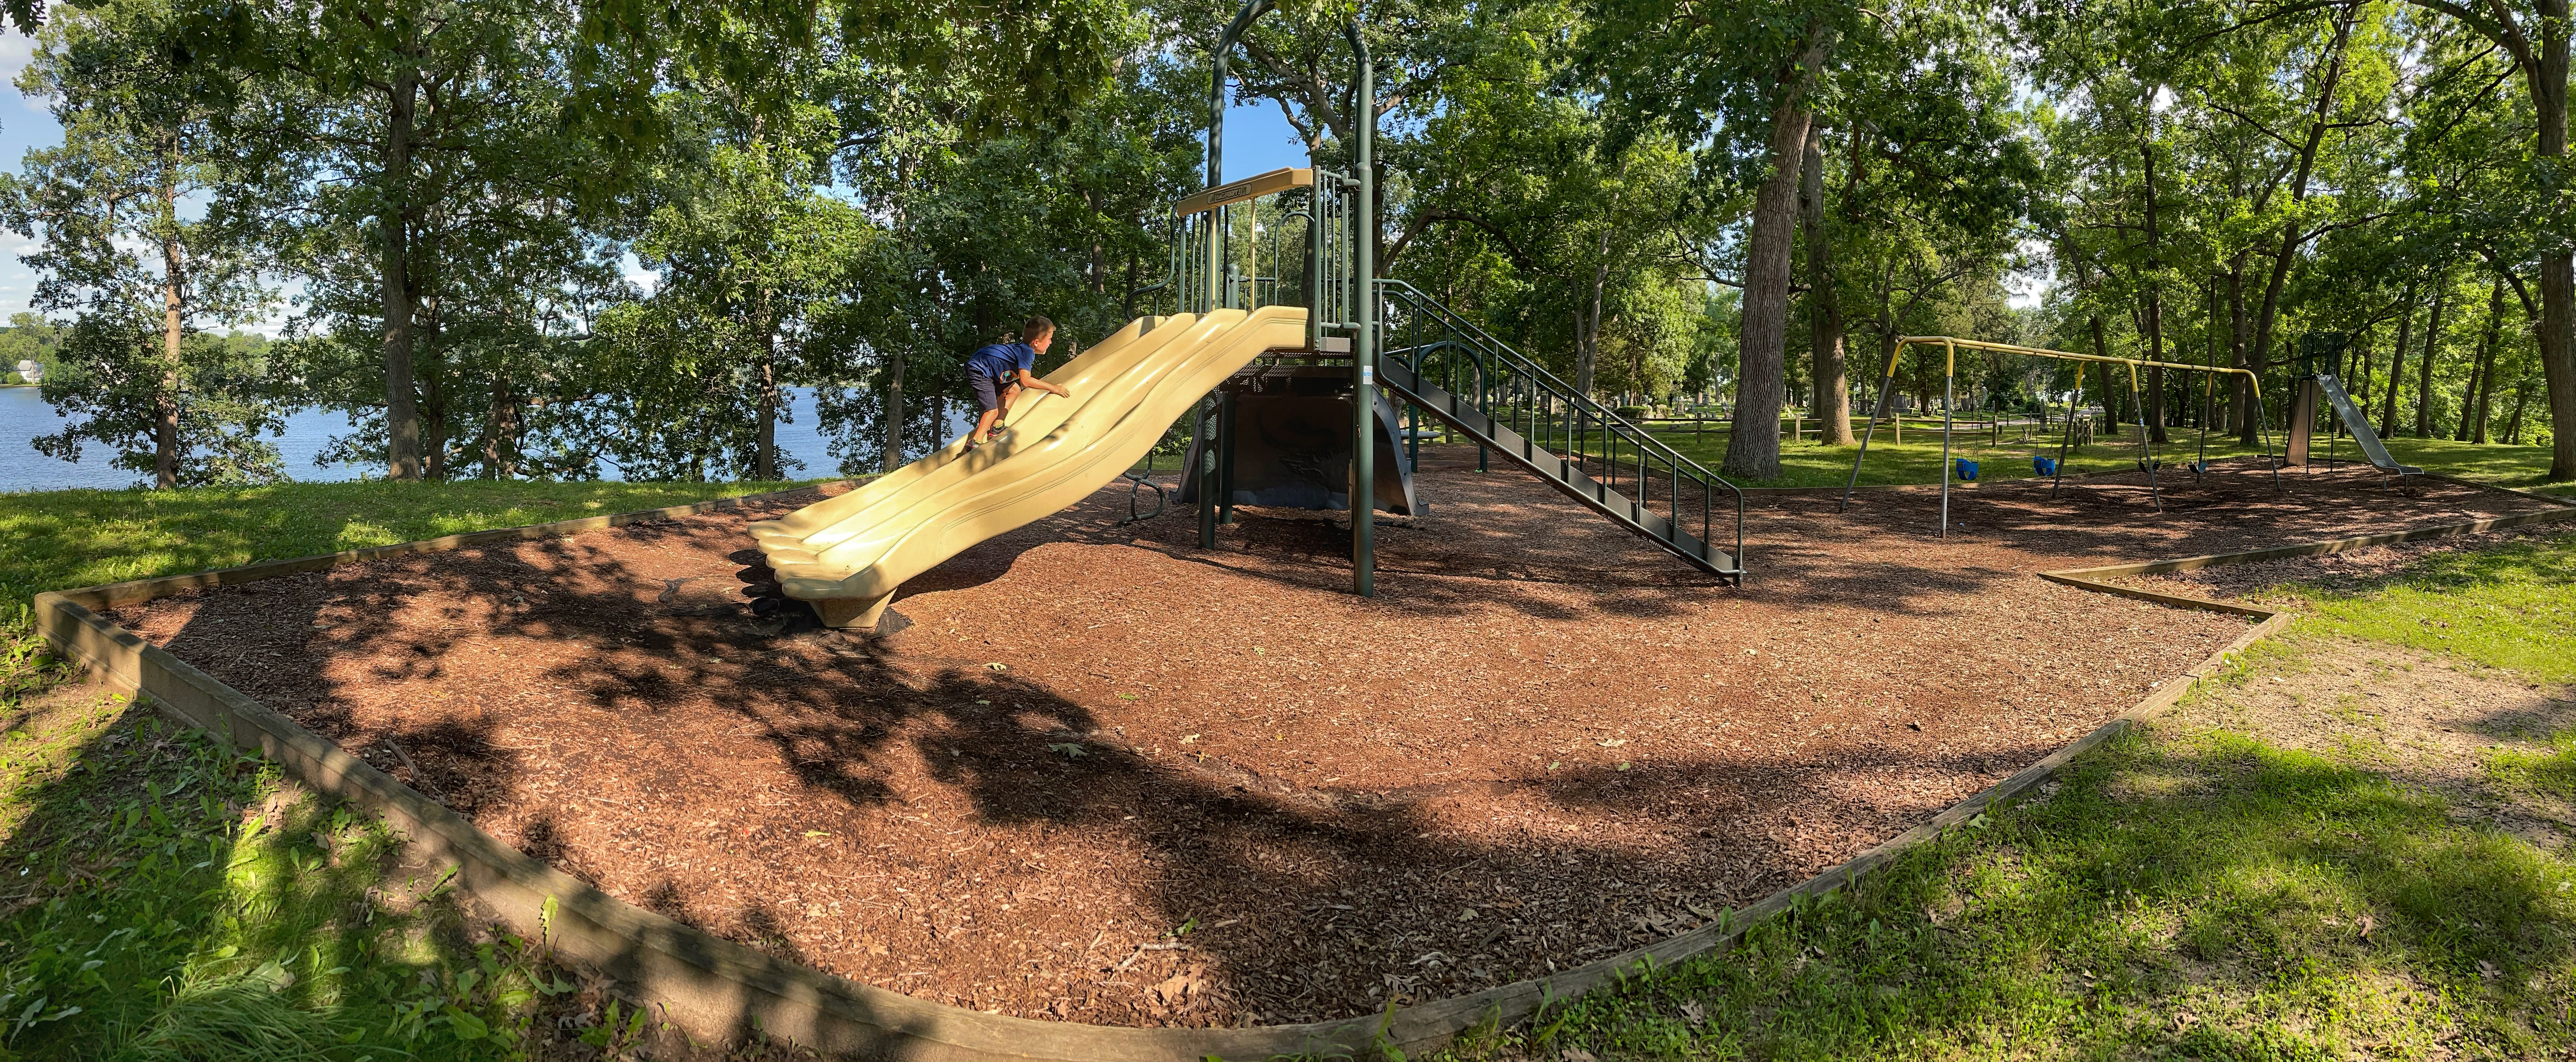 Best Playgrounds in Livingston County